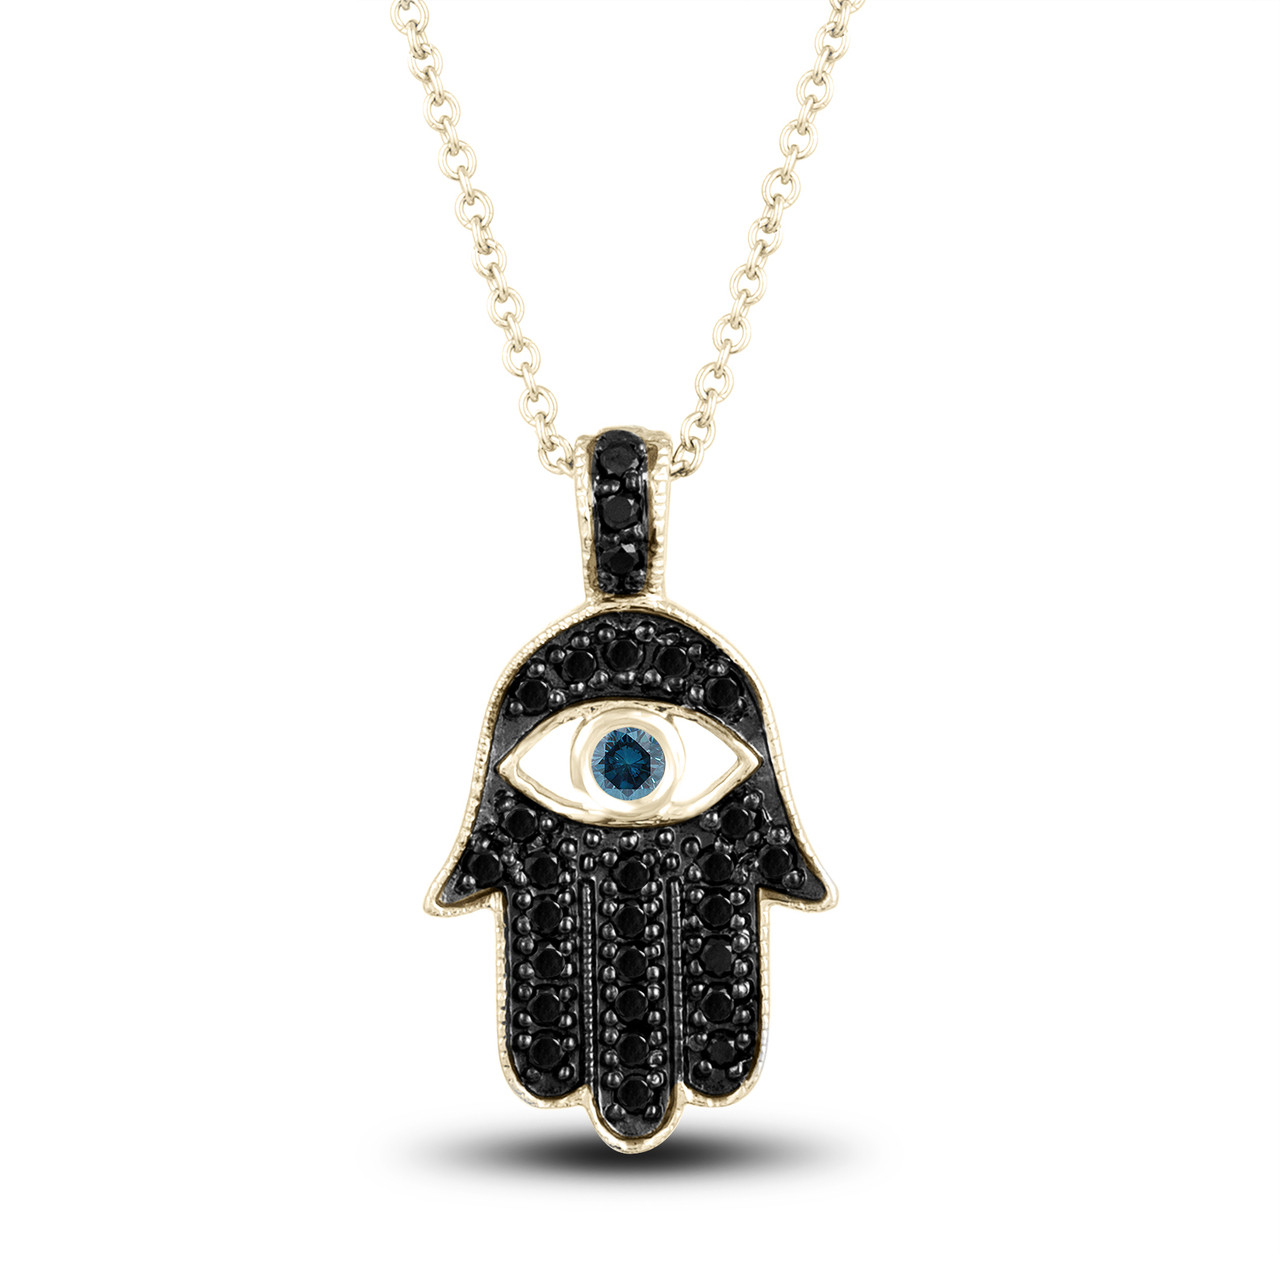 Fancy black diamond hamsa pendant necklace blue diamond eye 036 fancy black diamond hamsa pendant necklace blue diamond eye 036 carat 14k yellow gold unique handmade pave set mozeypictures